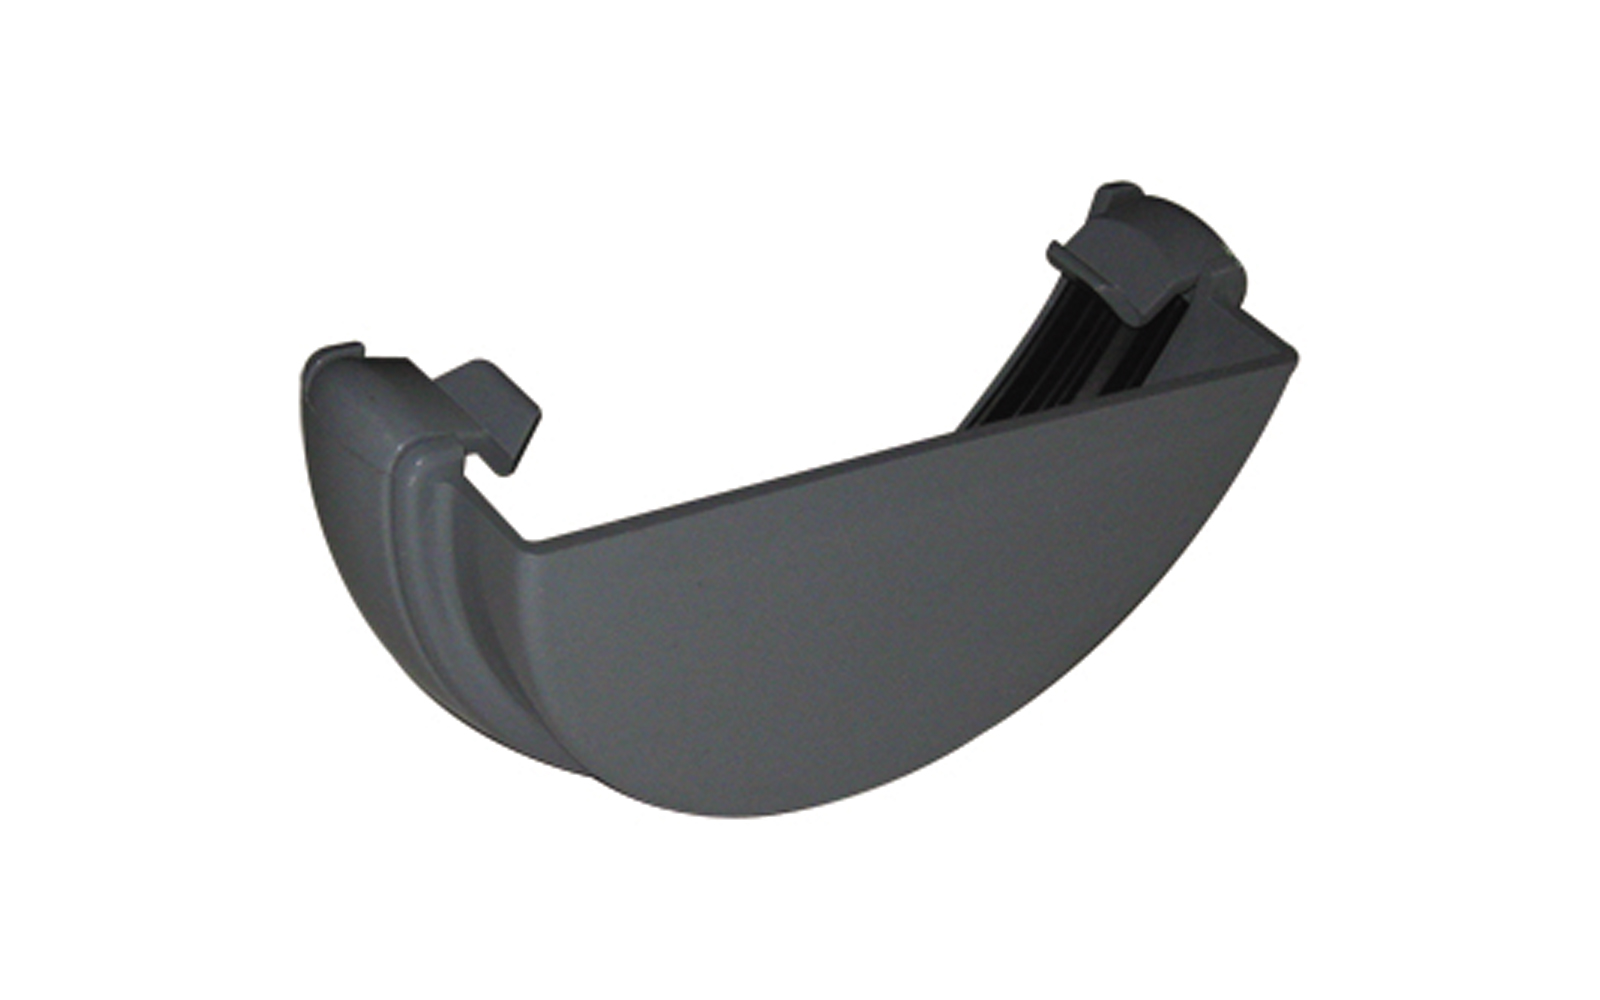 FLOPLAST HALF ROUND GUTTER - RE1 EXTERNAL STOPEND - GREY